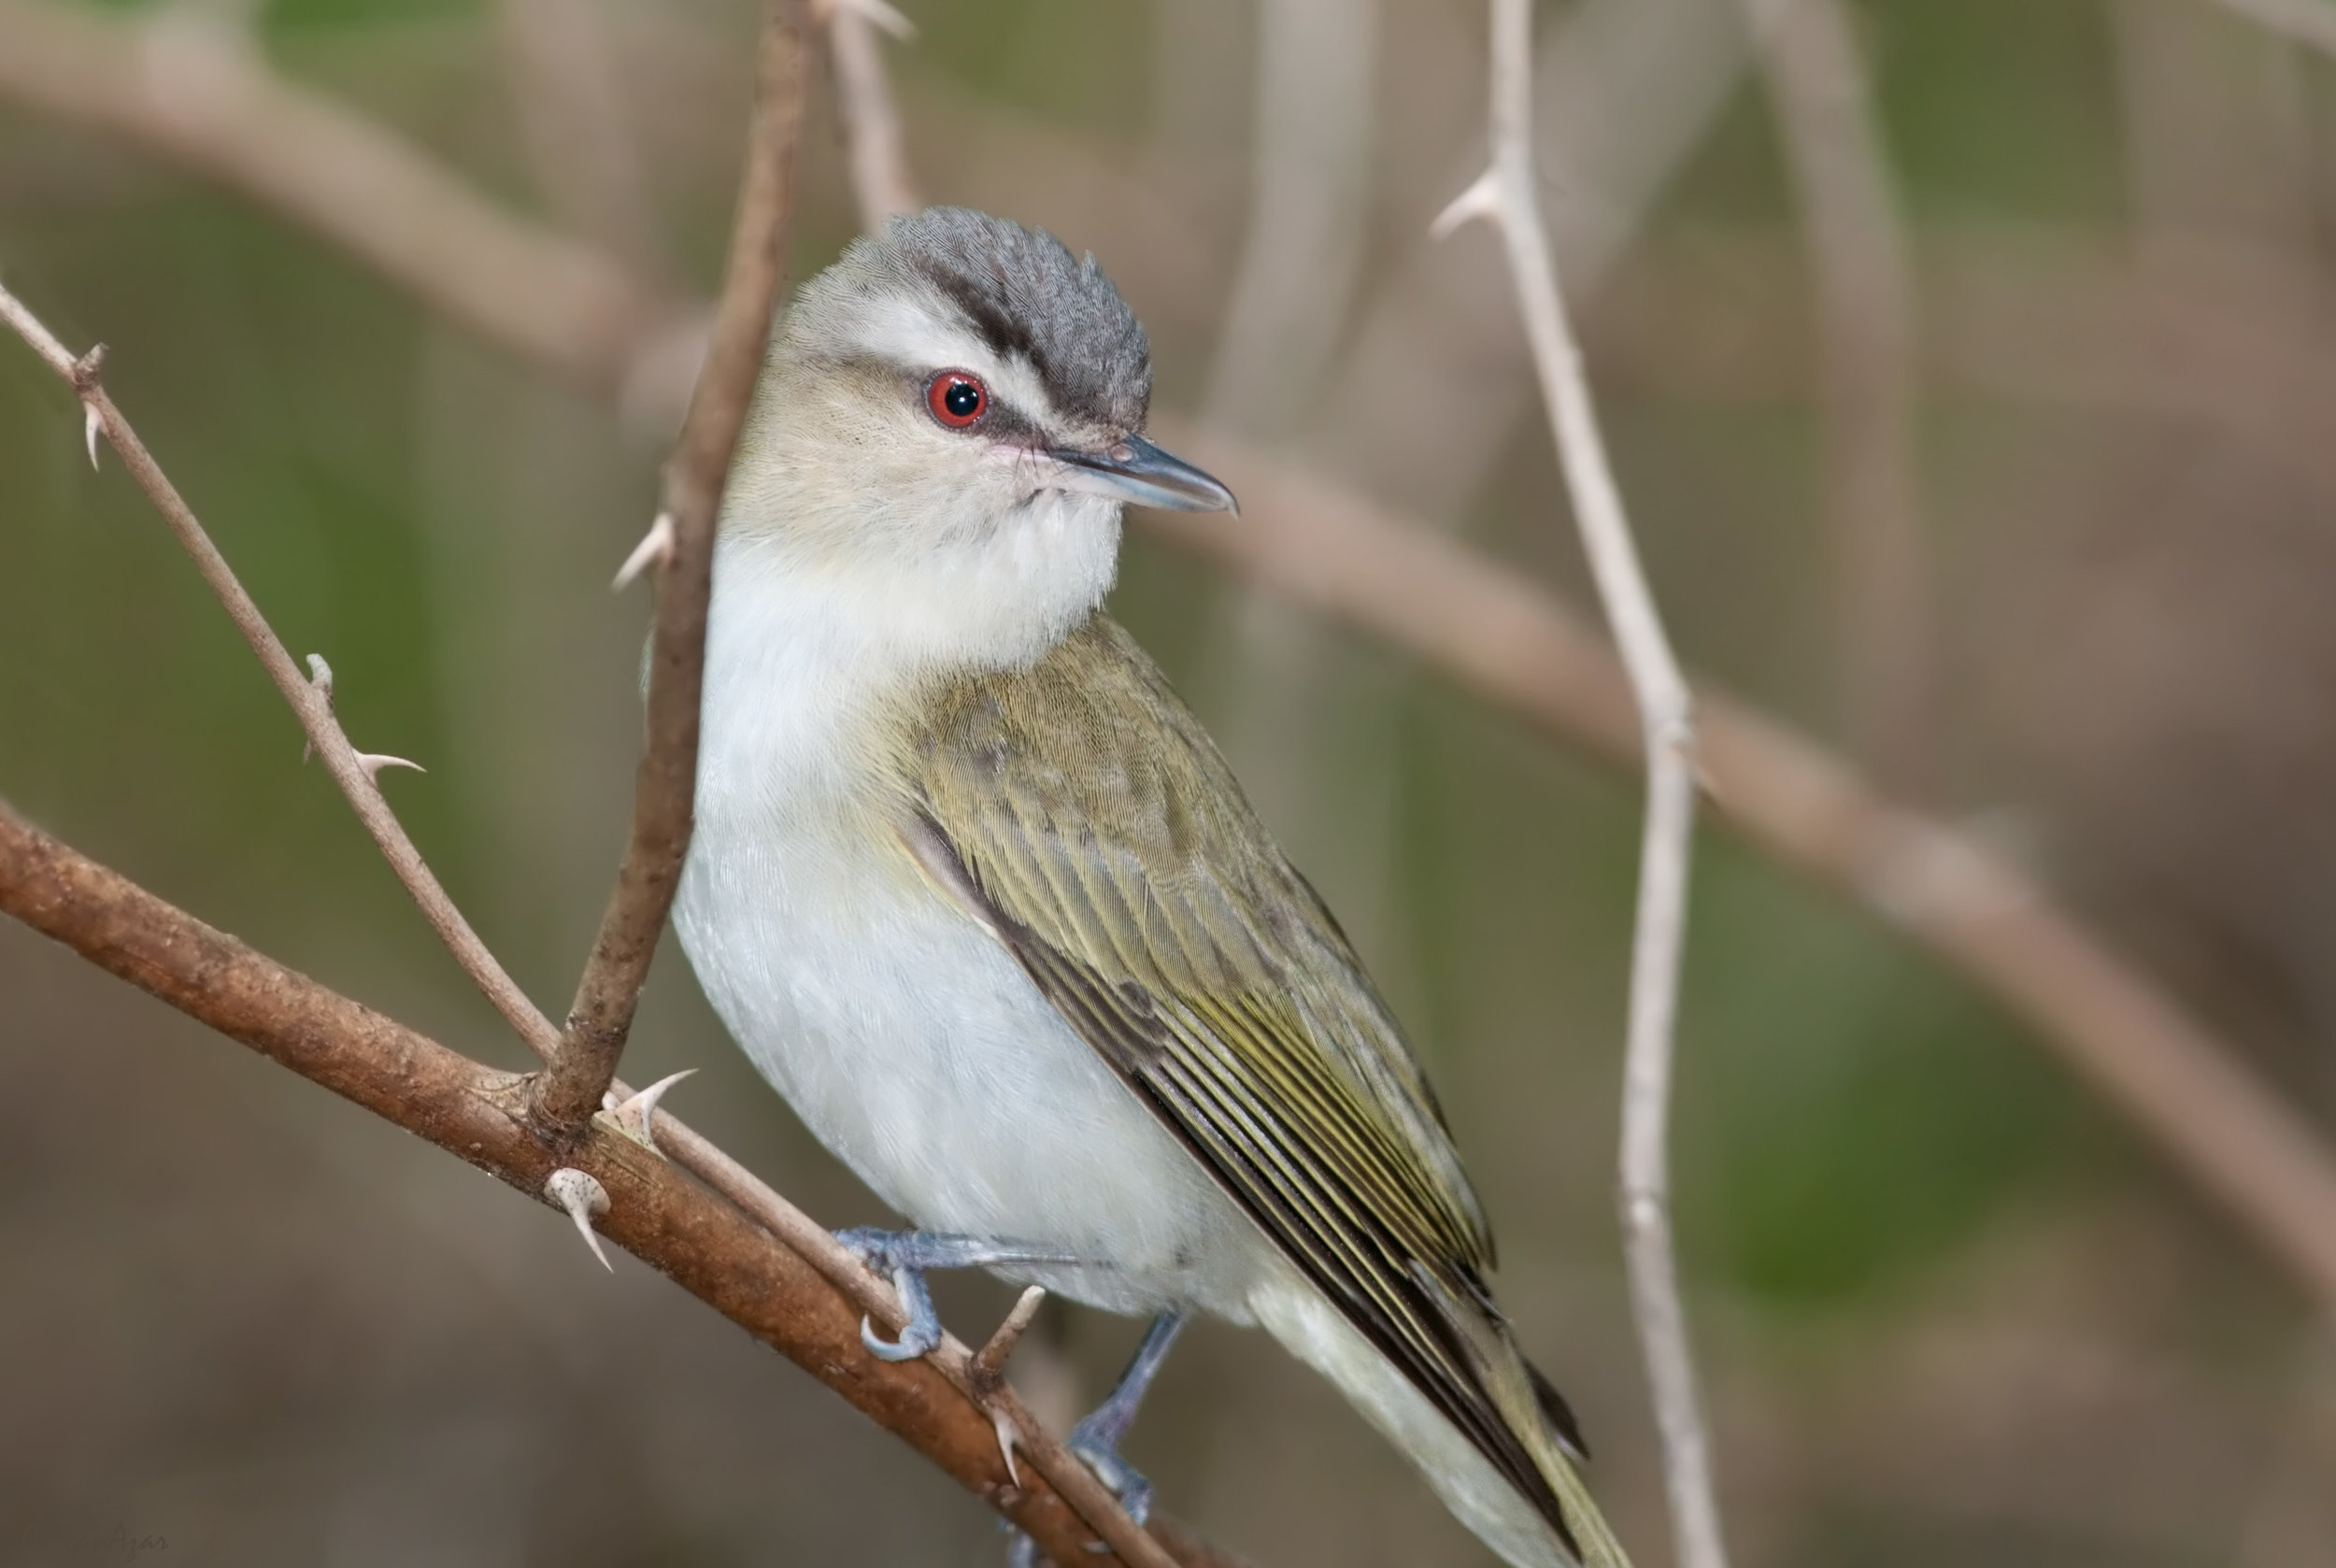 """- Red-eyed Vireo (Vireo olivaceus)Red-eyed Vireos live mostly in deciduous forests. Their diet consists of insects, berries, and some fruit. The Vireo's """"Red eye"""" does not develop until after their first year, when it changes from brown to a shade of red. Their wingspan is 9.1-9.8 in. and they weigh 0.4-0.9 oz. One of the Red-eyed Vireo's calls says """"myah"""" in a nasal tone. They are protected on the US Migratory Bird list.Photo Credits: Kelly Colgan Azar"""